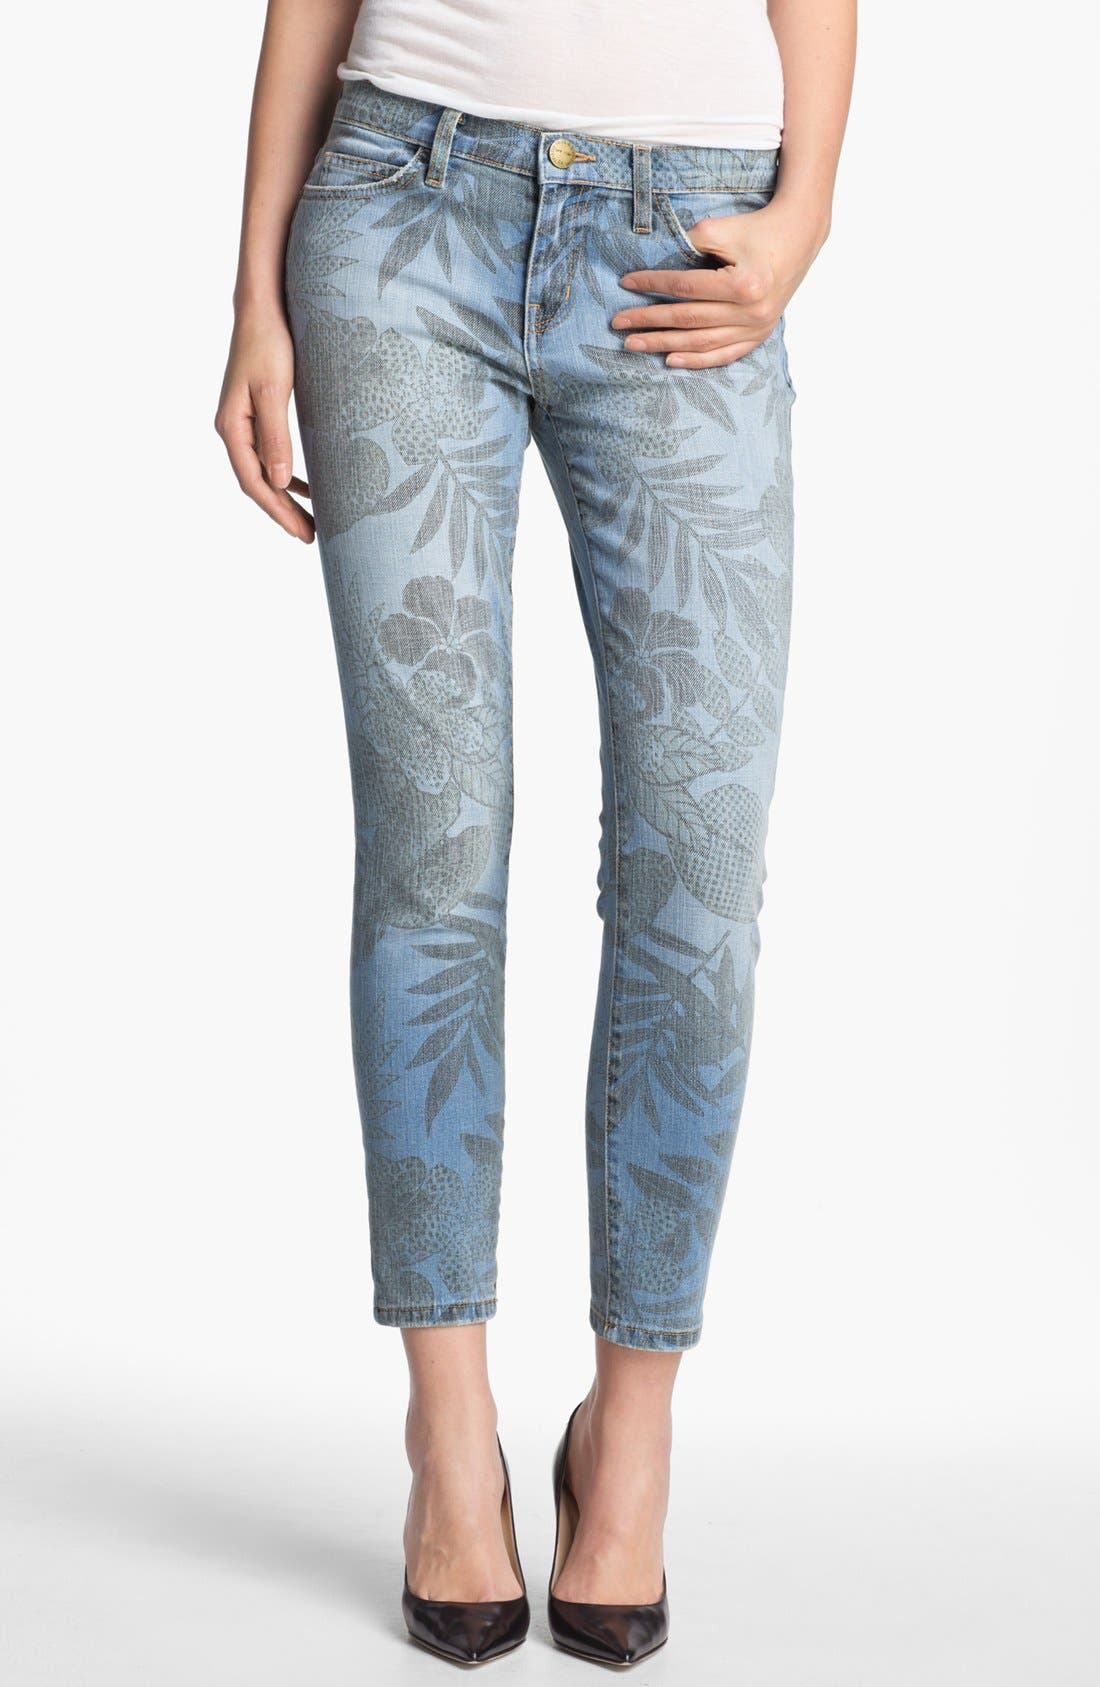 Main Image - Current/Elliott 'The Stiletto' Jungle Print Stretch Jeans